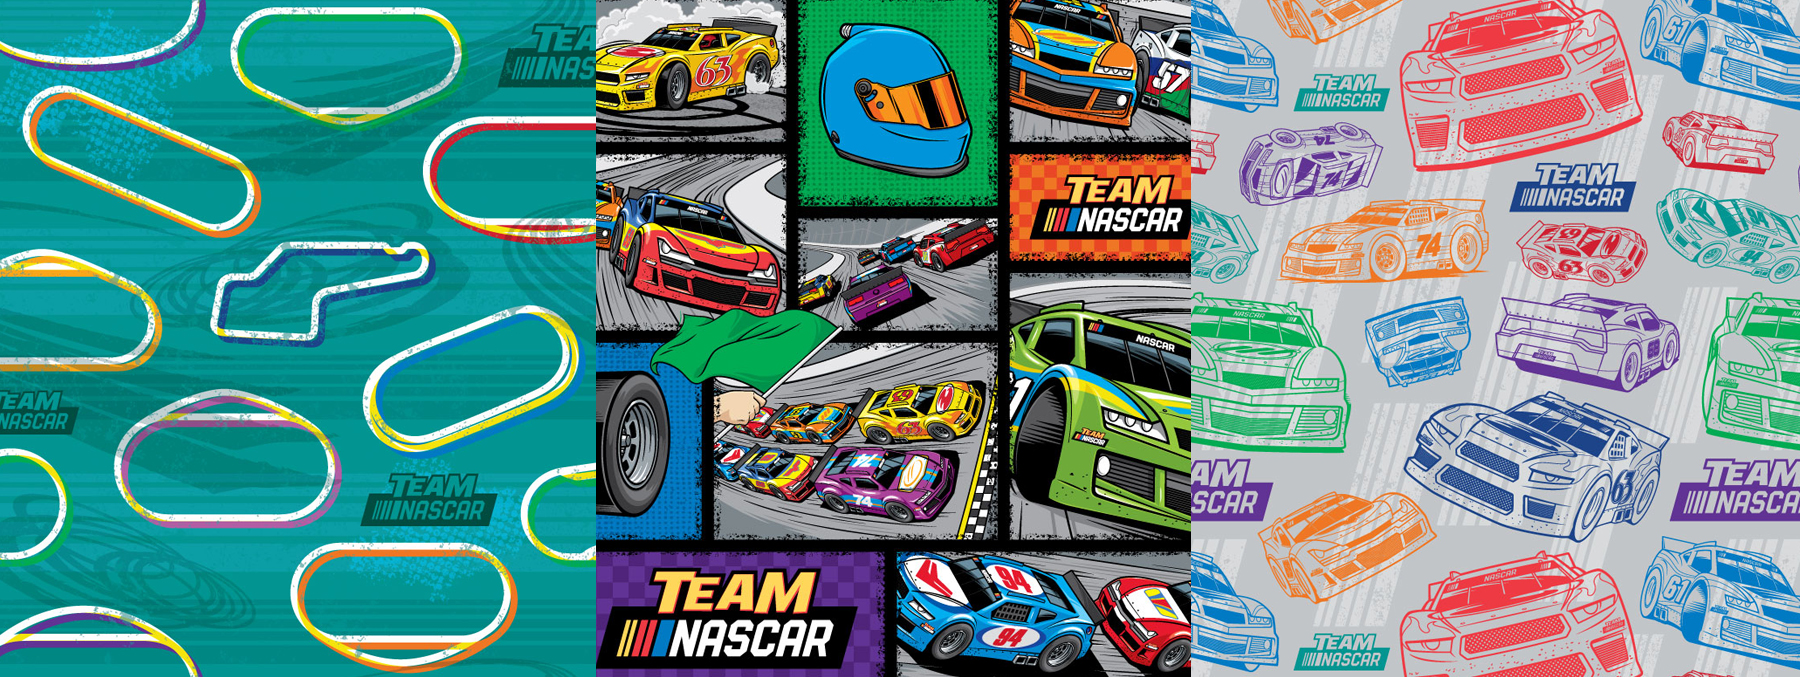 Team Nascar Style Guide Design - Panel 4